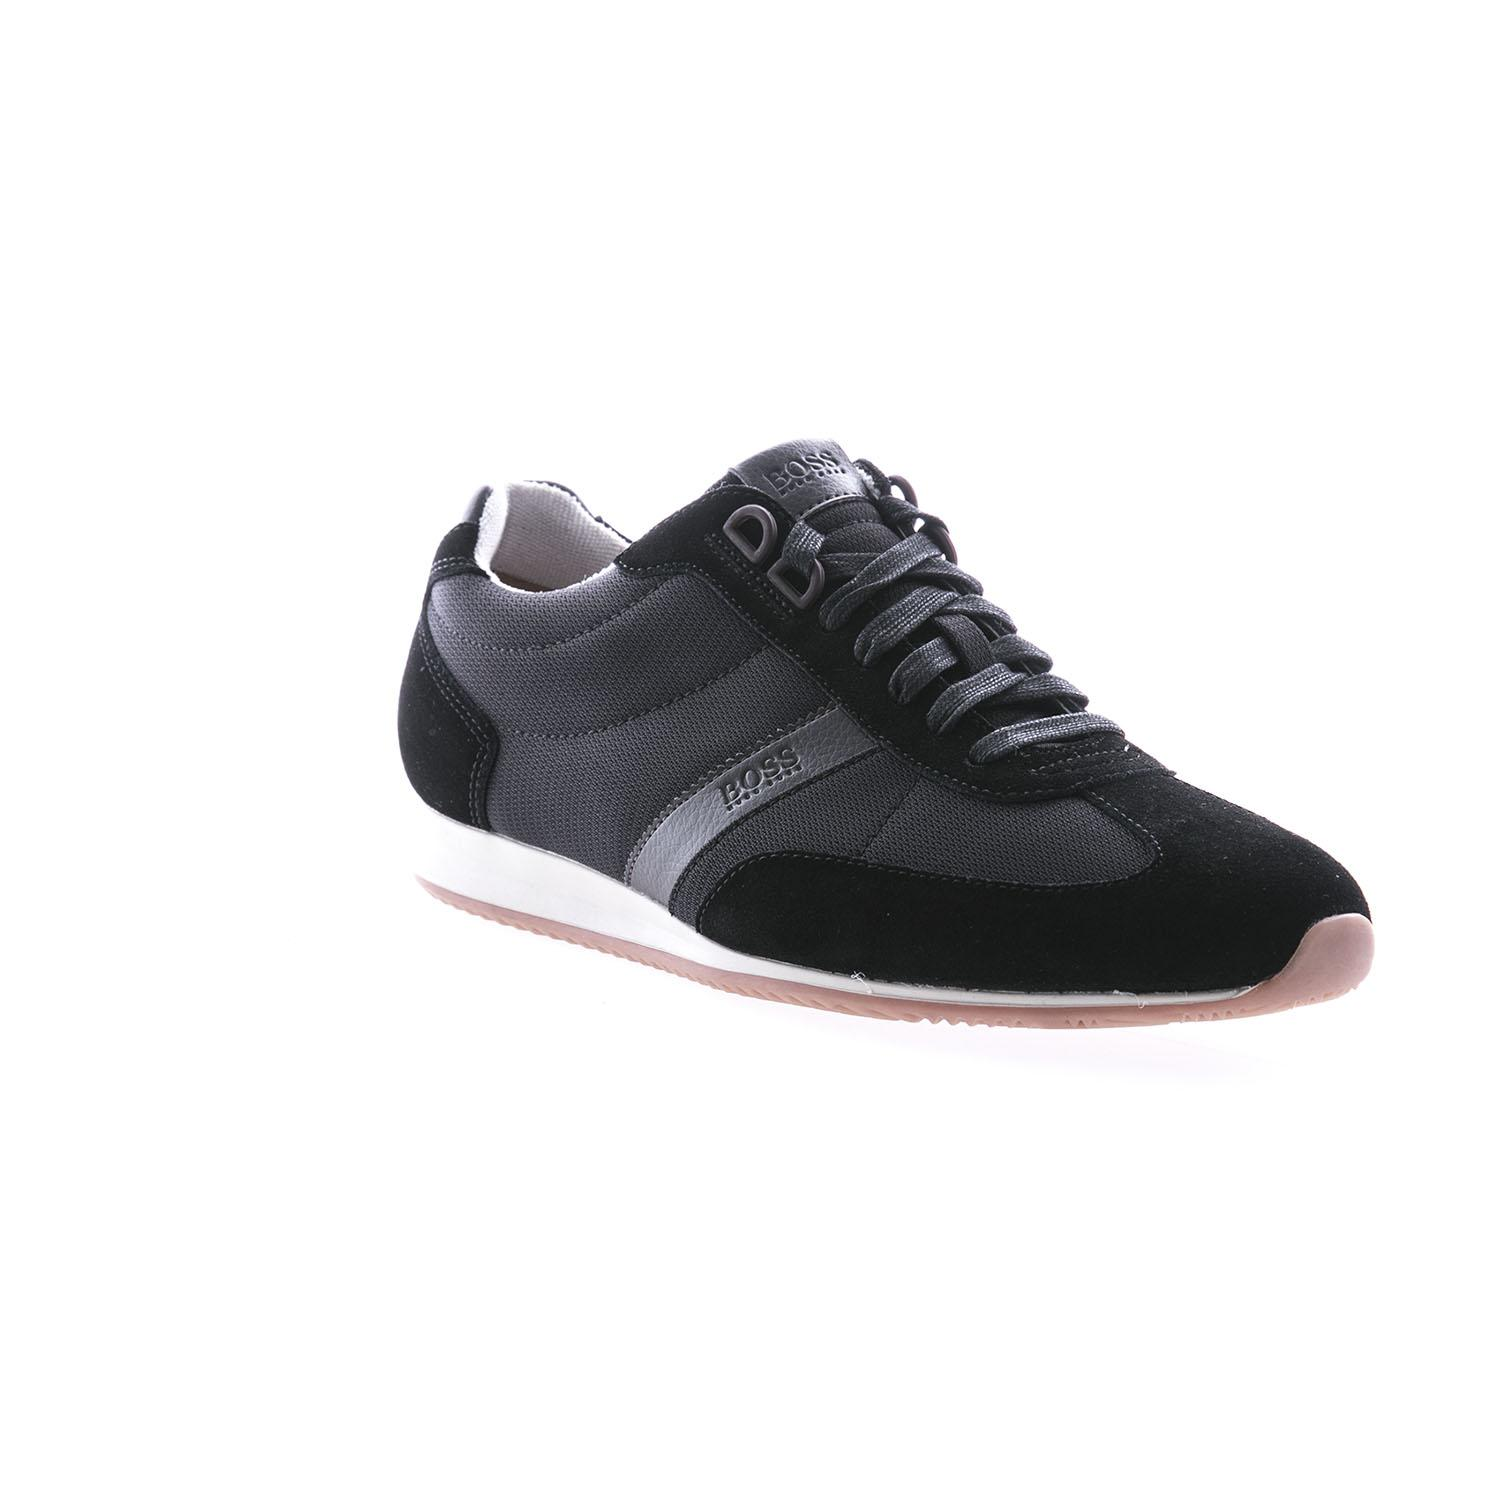 BOSS Orange - Black Orland lowp sdny1 Trainers for Men - Lyst. View  fullscreen c4b0c4b28cc